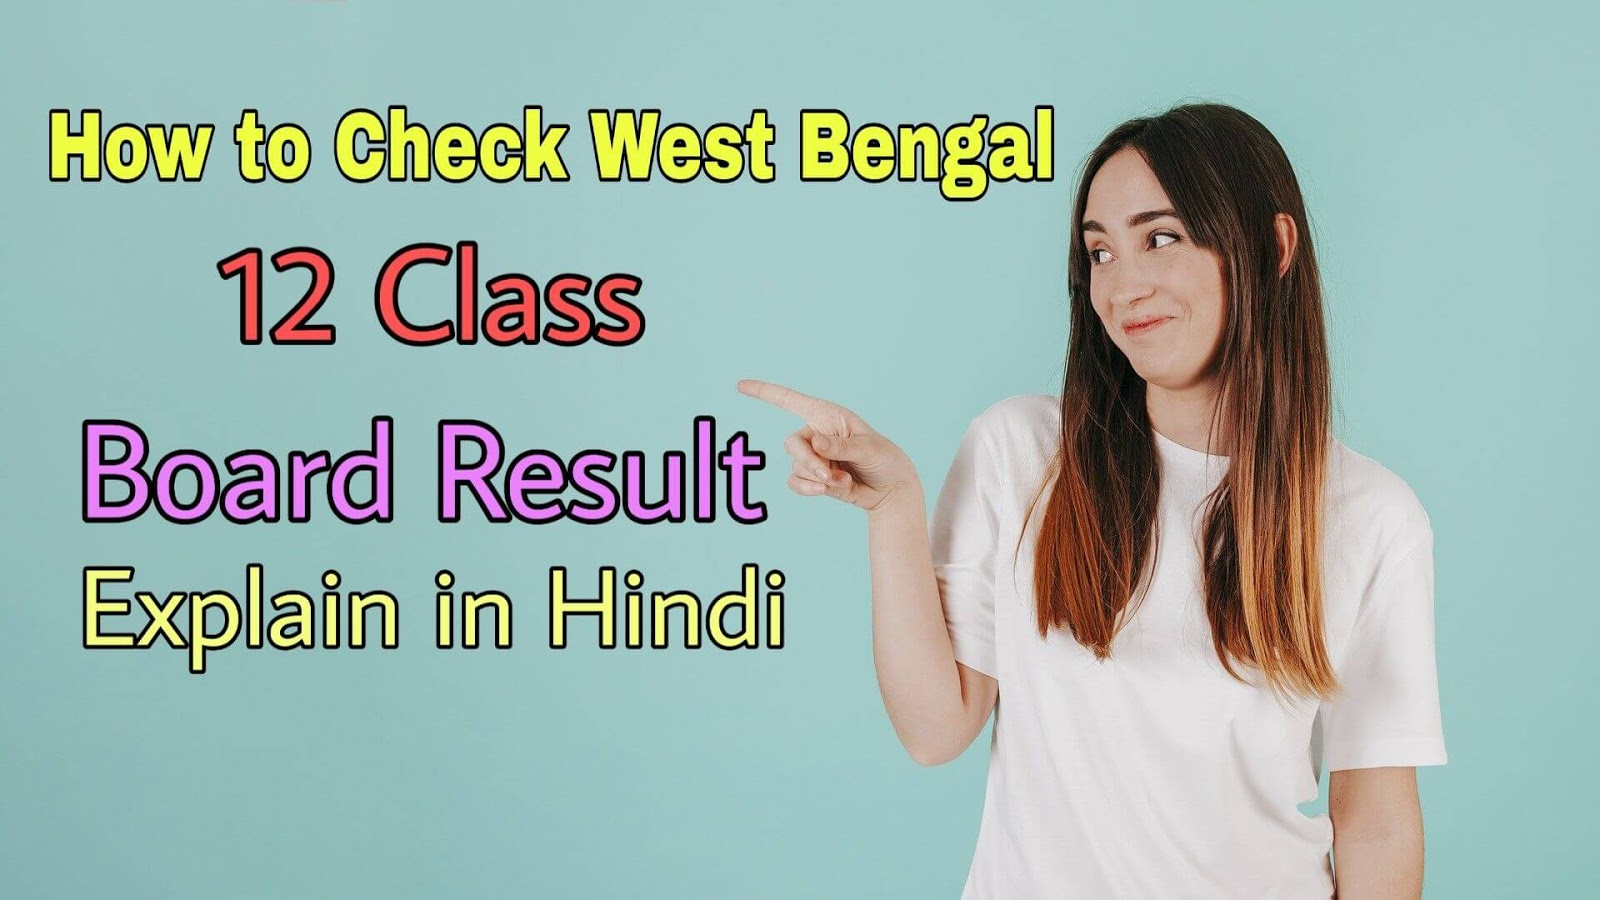 How to Check West Bengal 12 Class Board Result | Explain in Hindi - Tips and Solution